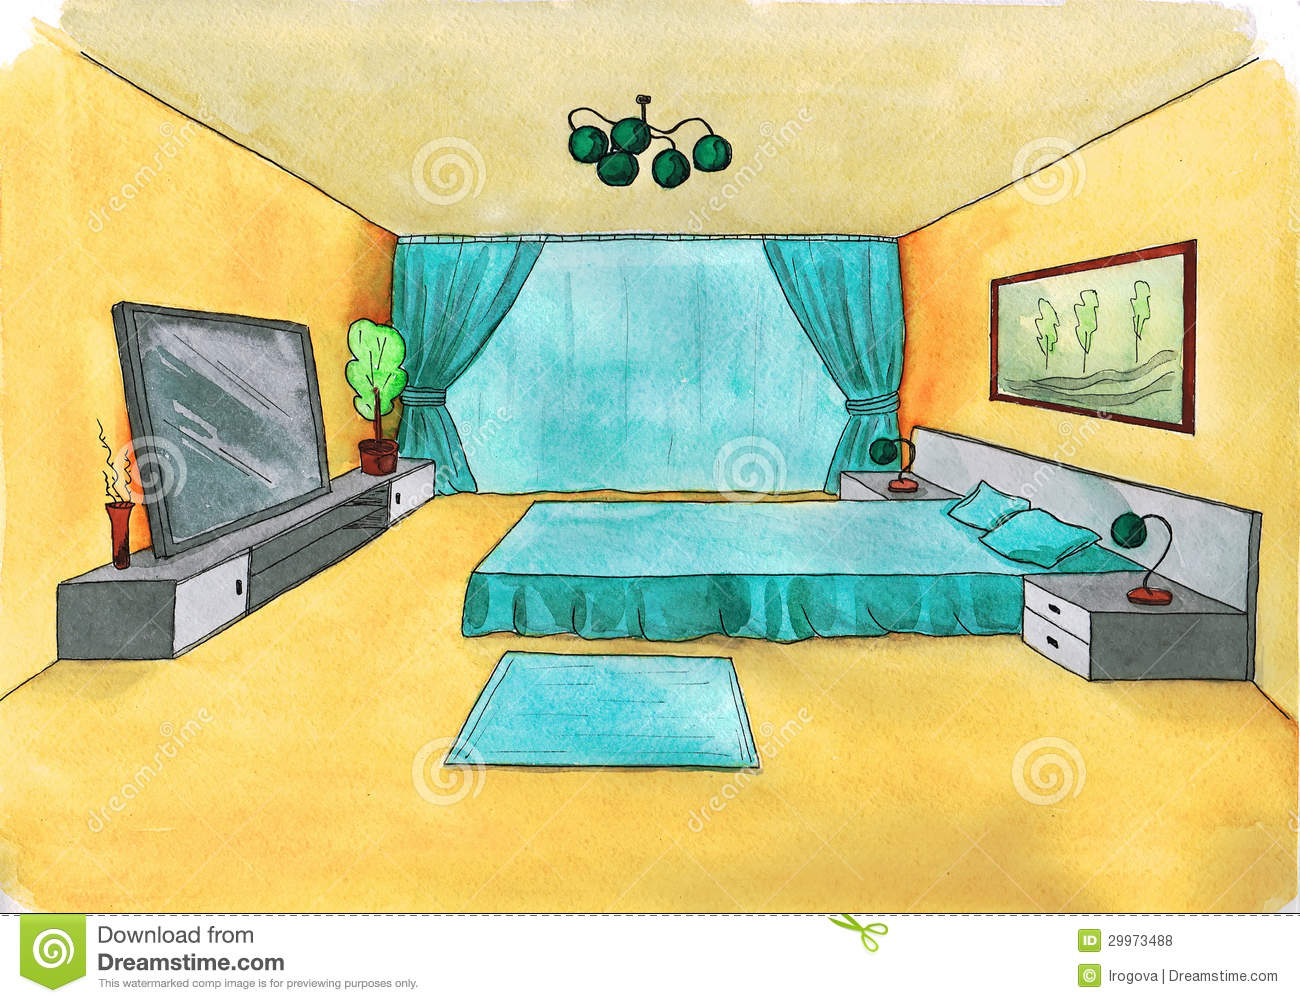 Bedroom drawing with color - Graphical Sketch Of An Interior Bedroom